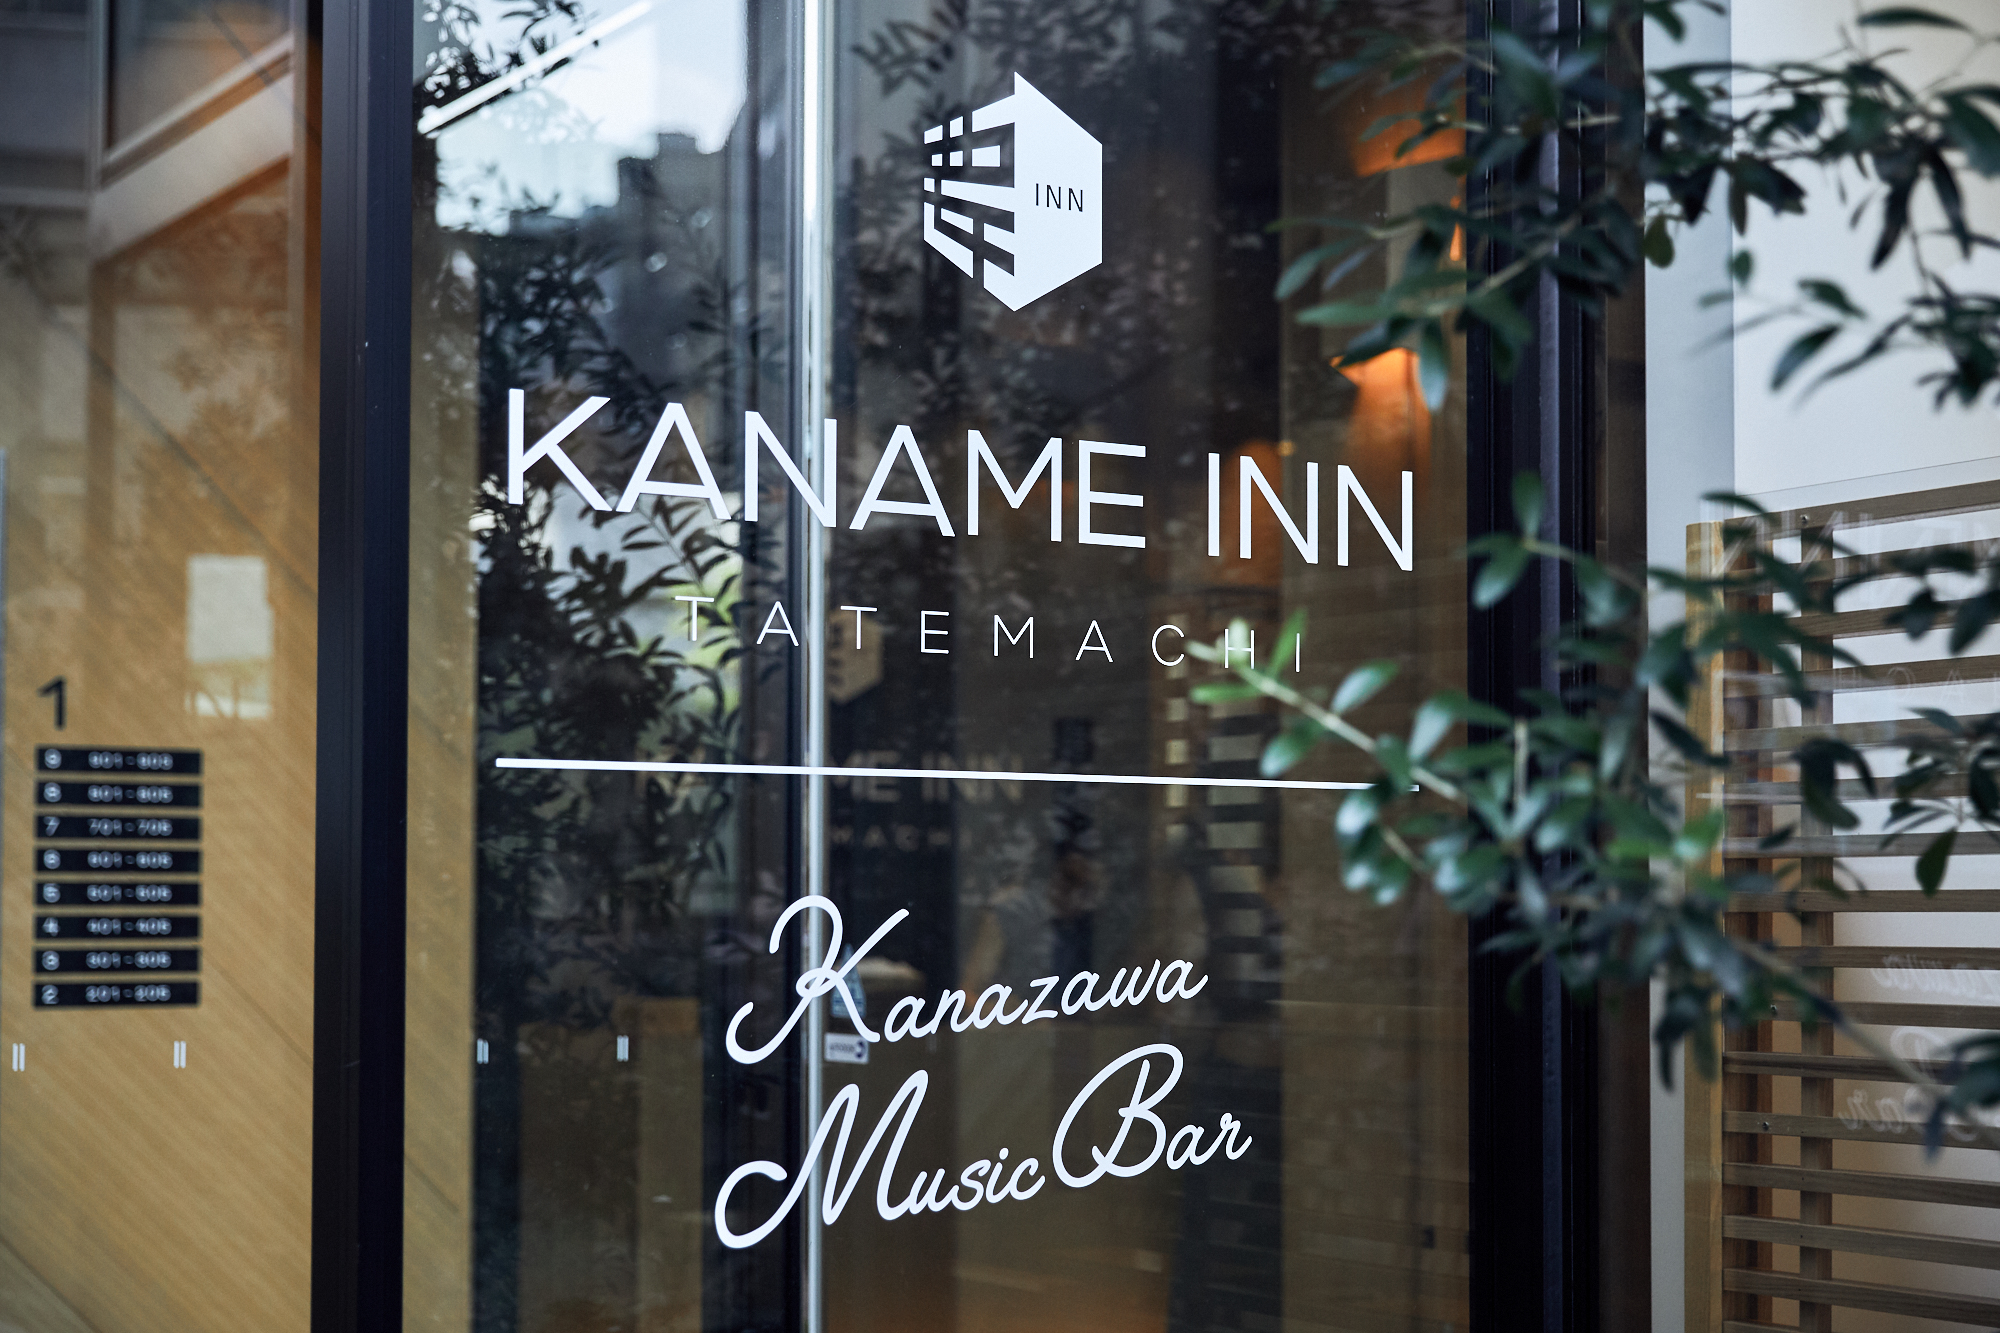 The main entrance to Kaname Inn Tatemachi and Kanazawa Music Bar